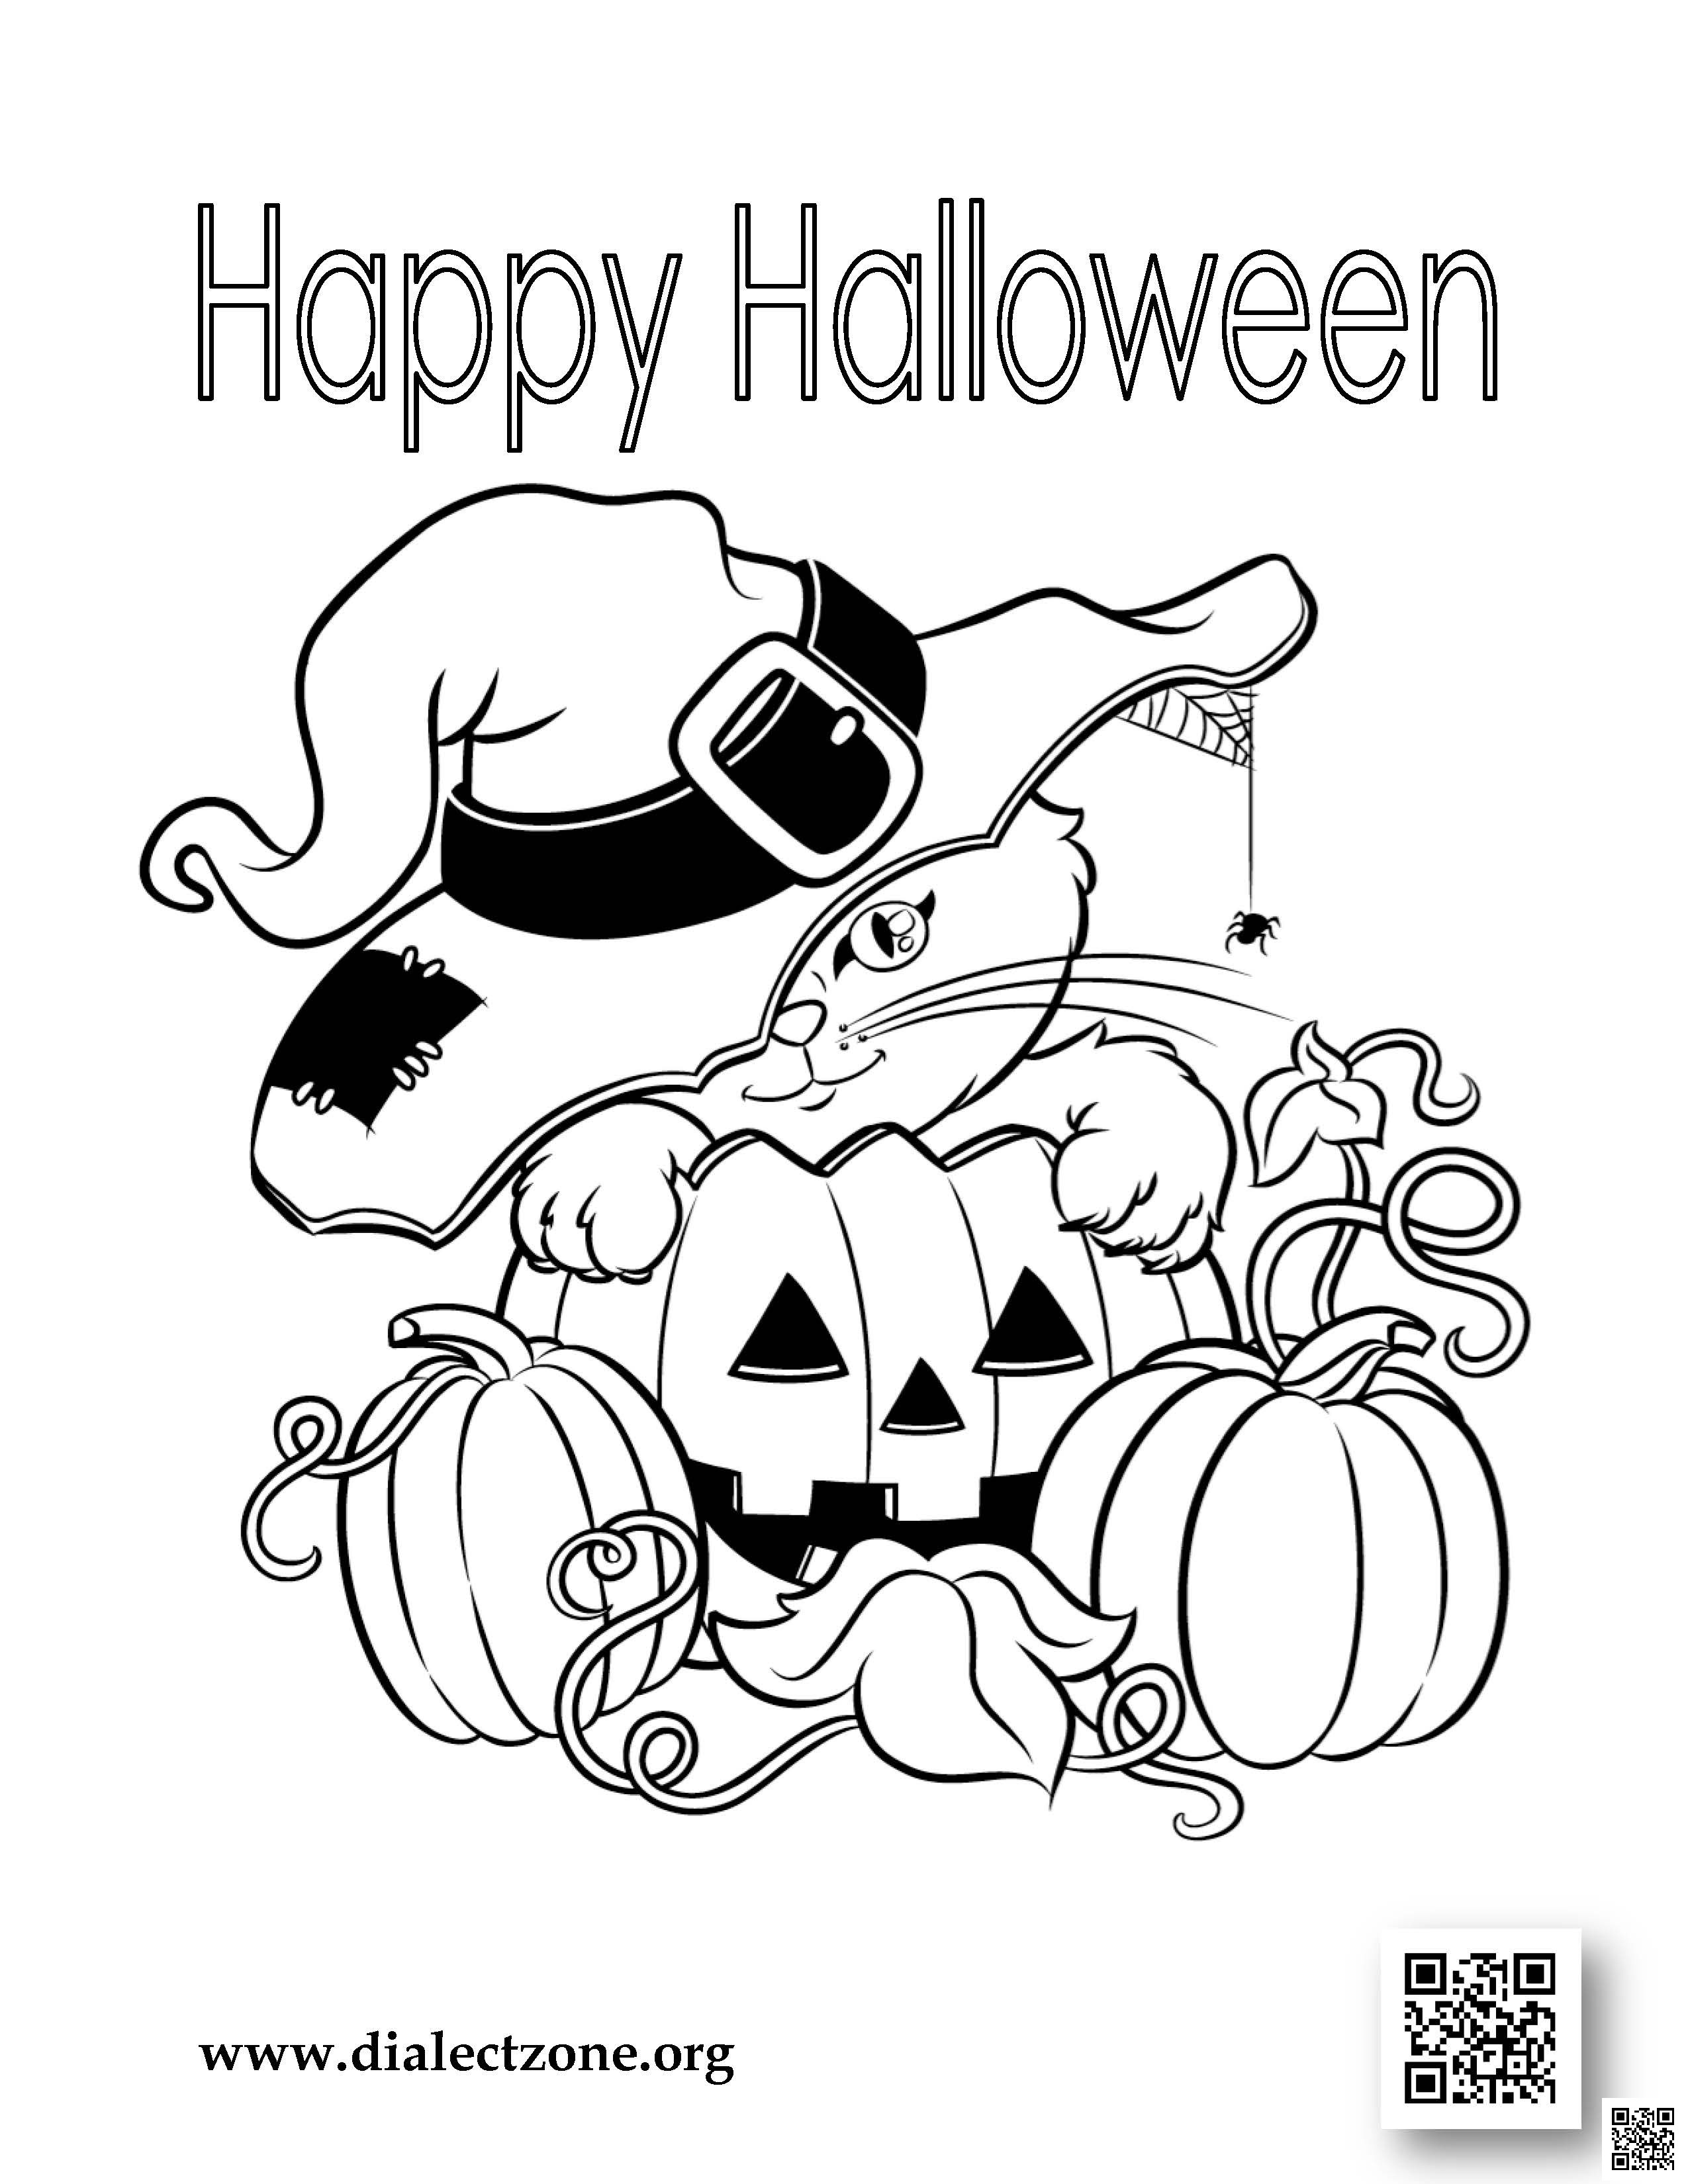 halloween 2016 coloring contest